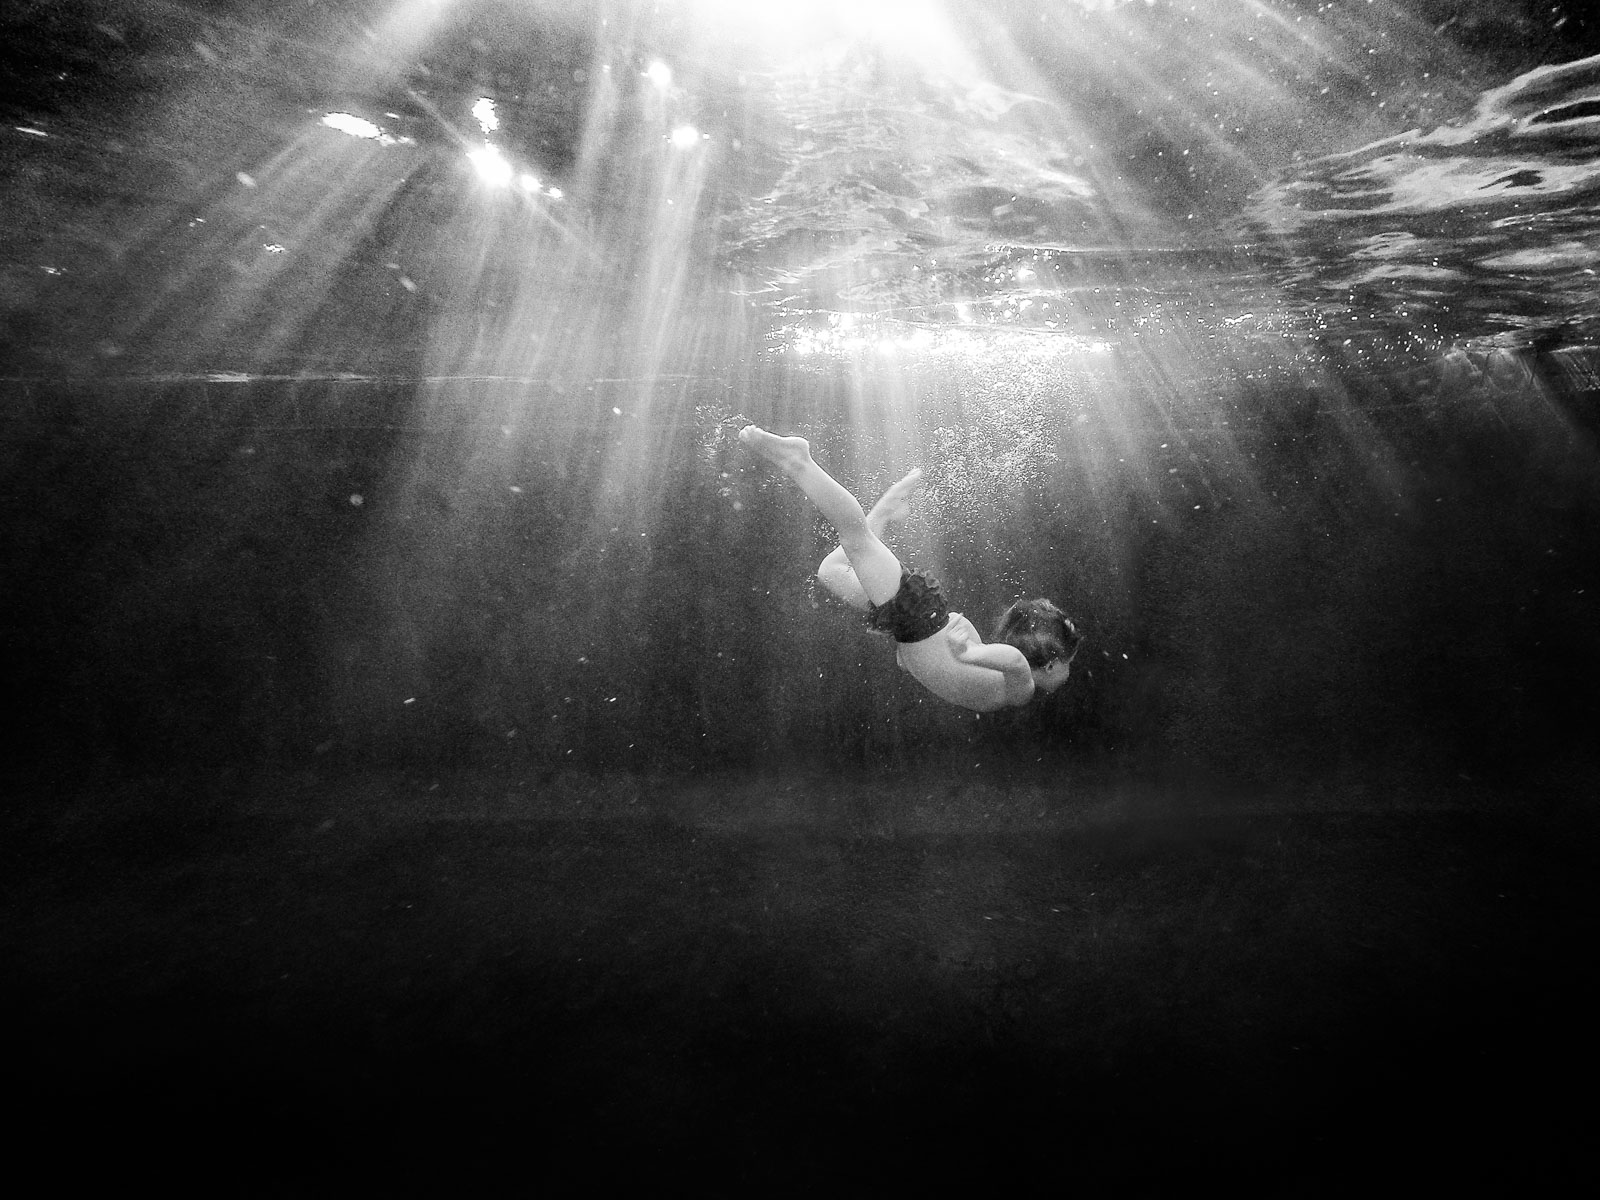 Underwater photo of boy swimming in rays of light